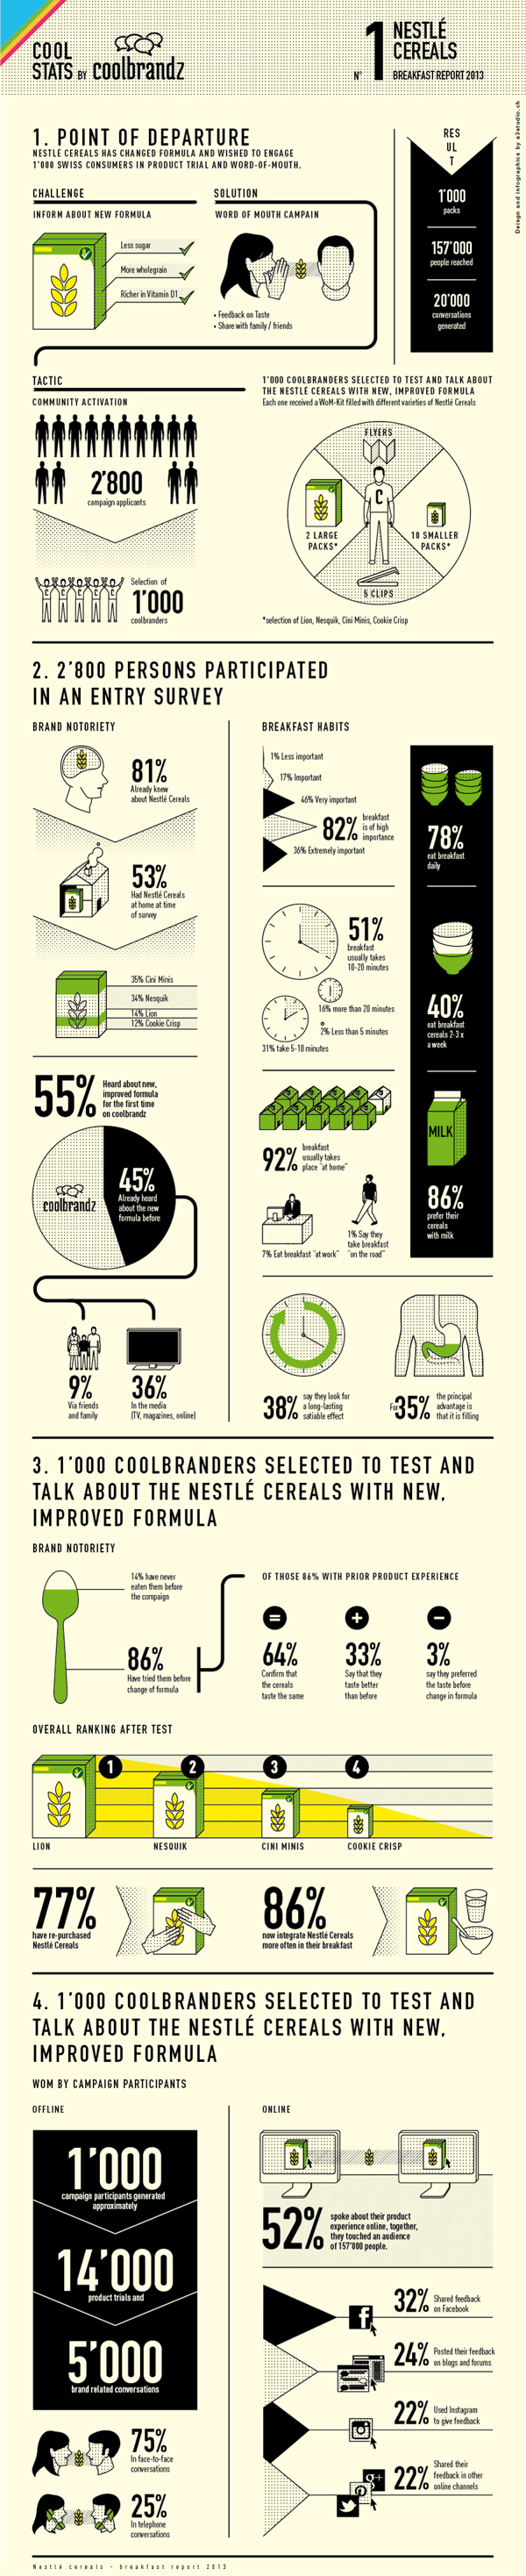 NESTLE CEREALS - INFOGRAPHICS by Yvo Hählen, via Behance